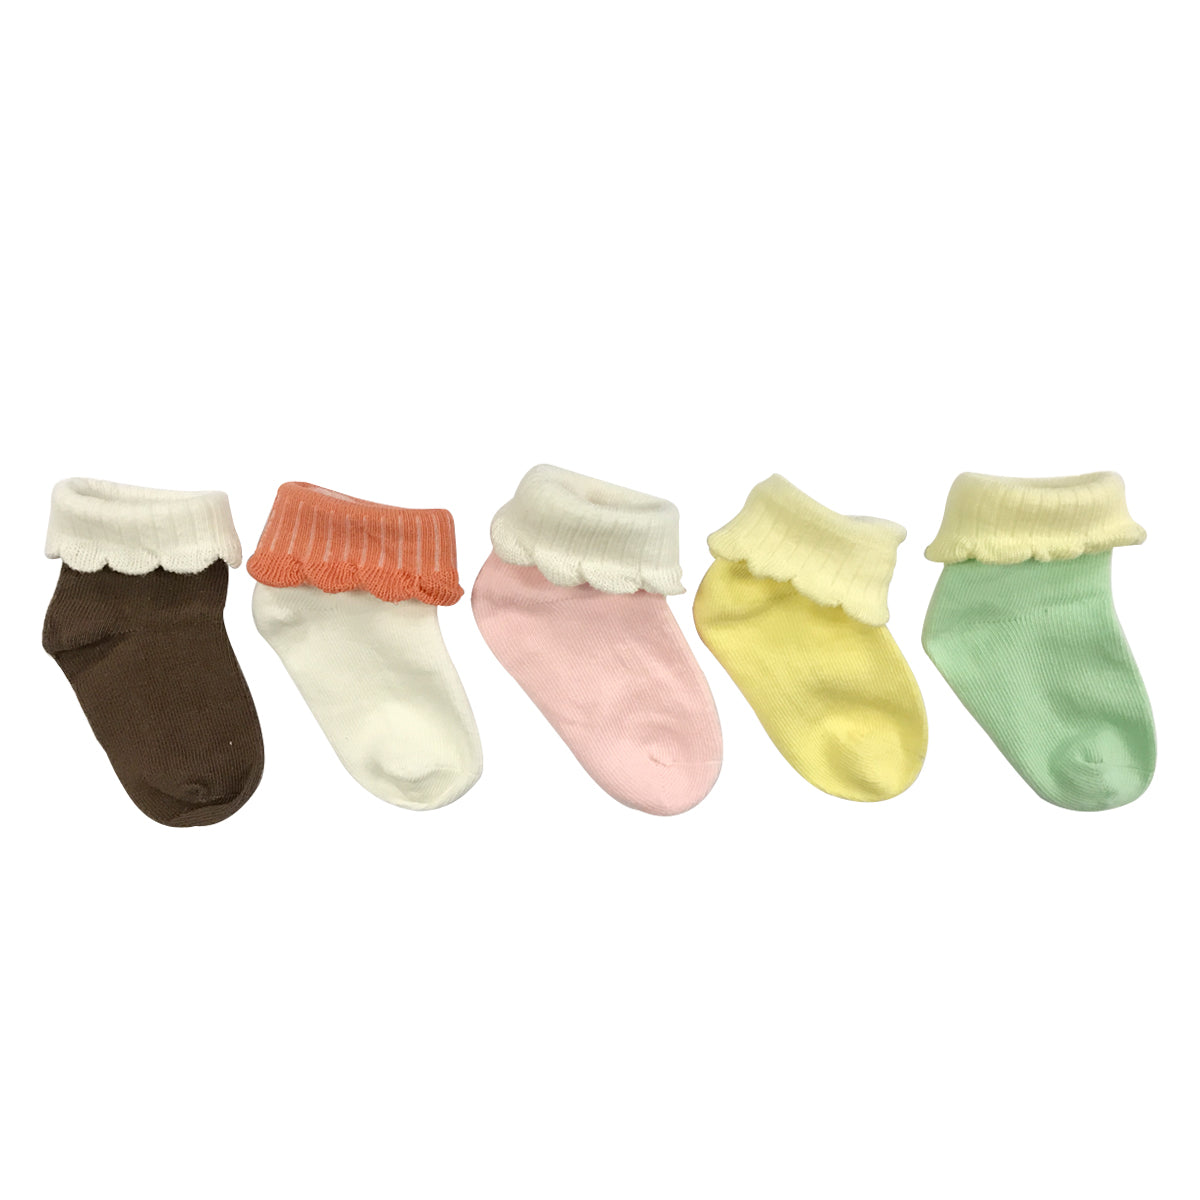 Wrapables Macaroon Color Baby Socks (Set of 5)